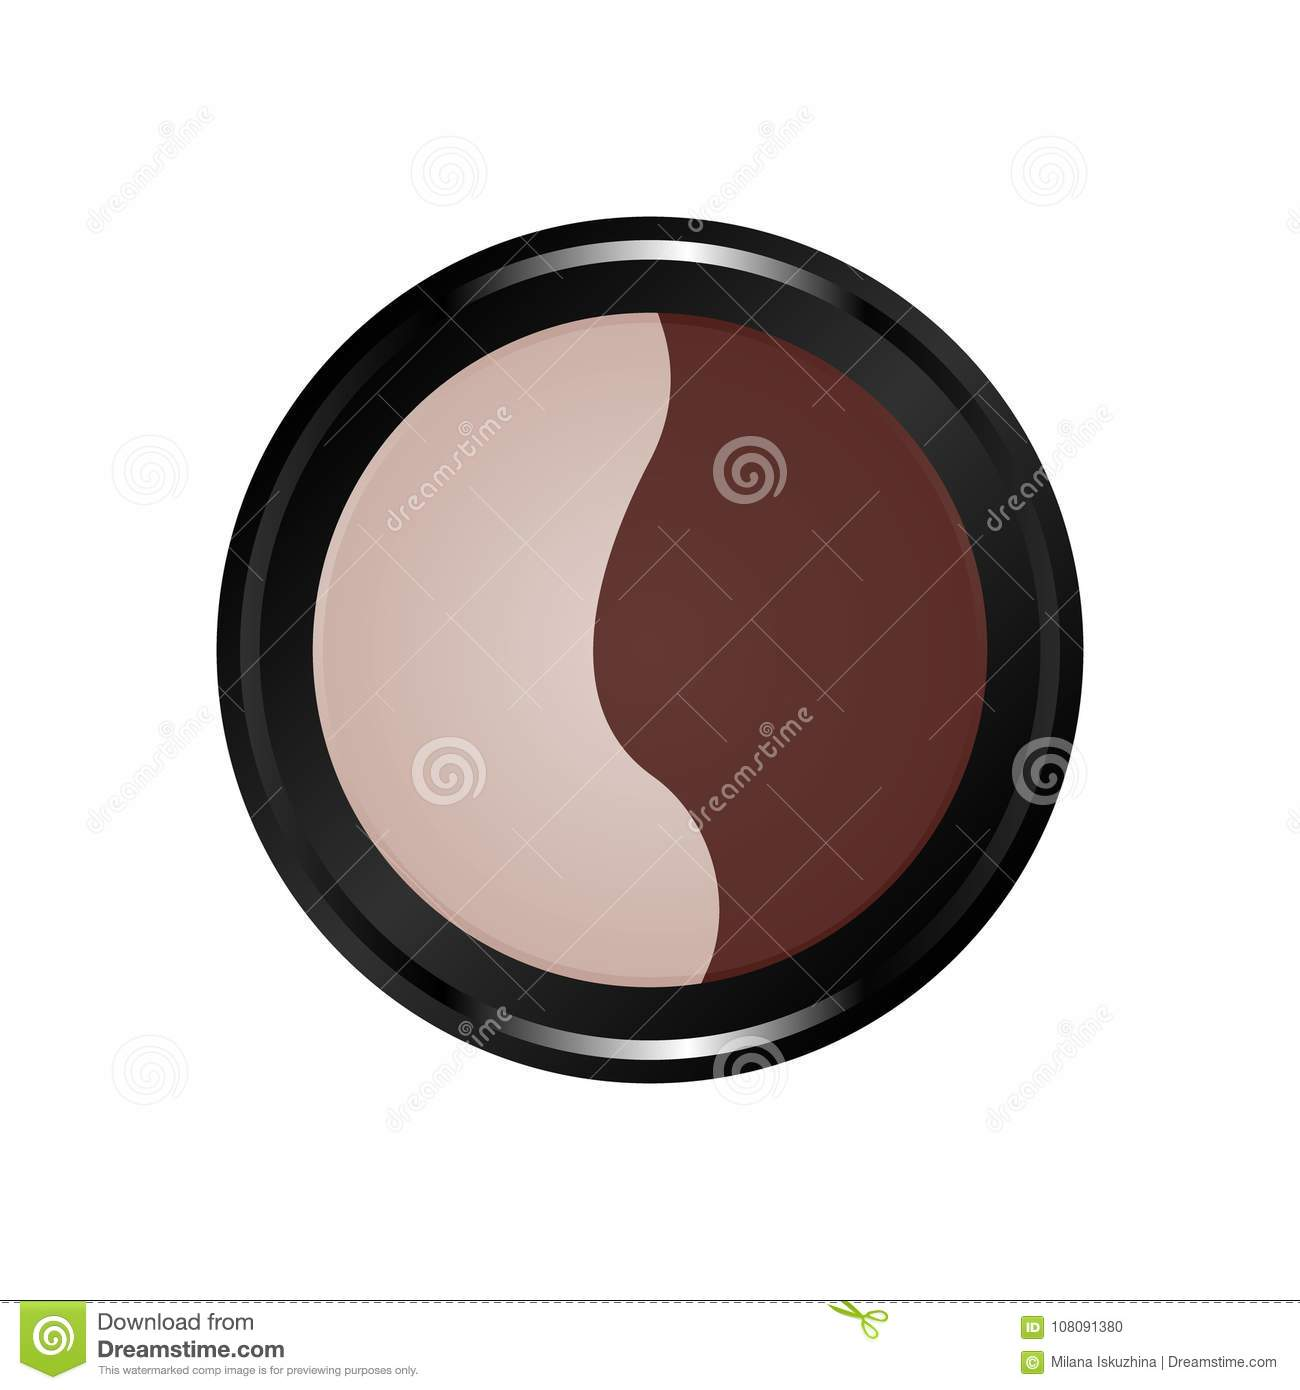 Makeup kit color icon. Cosmetic.